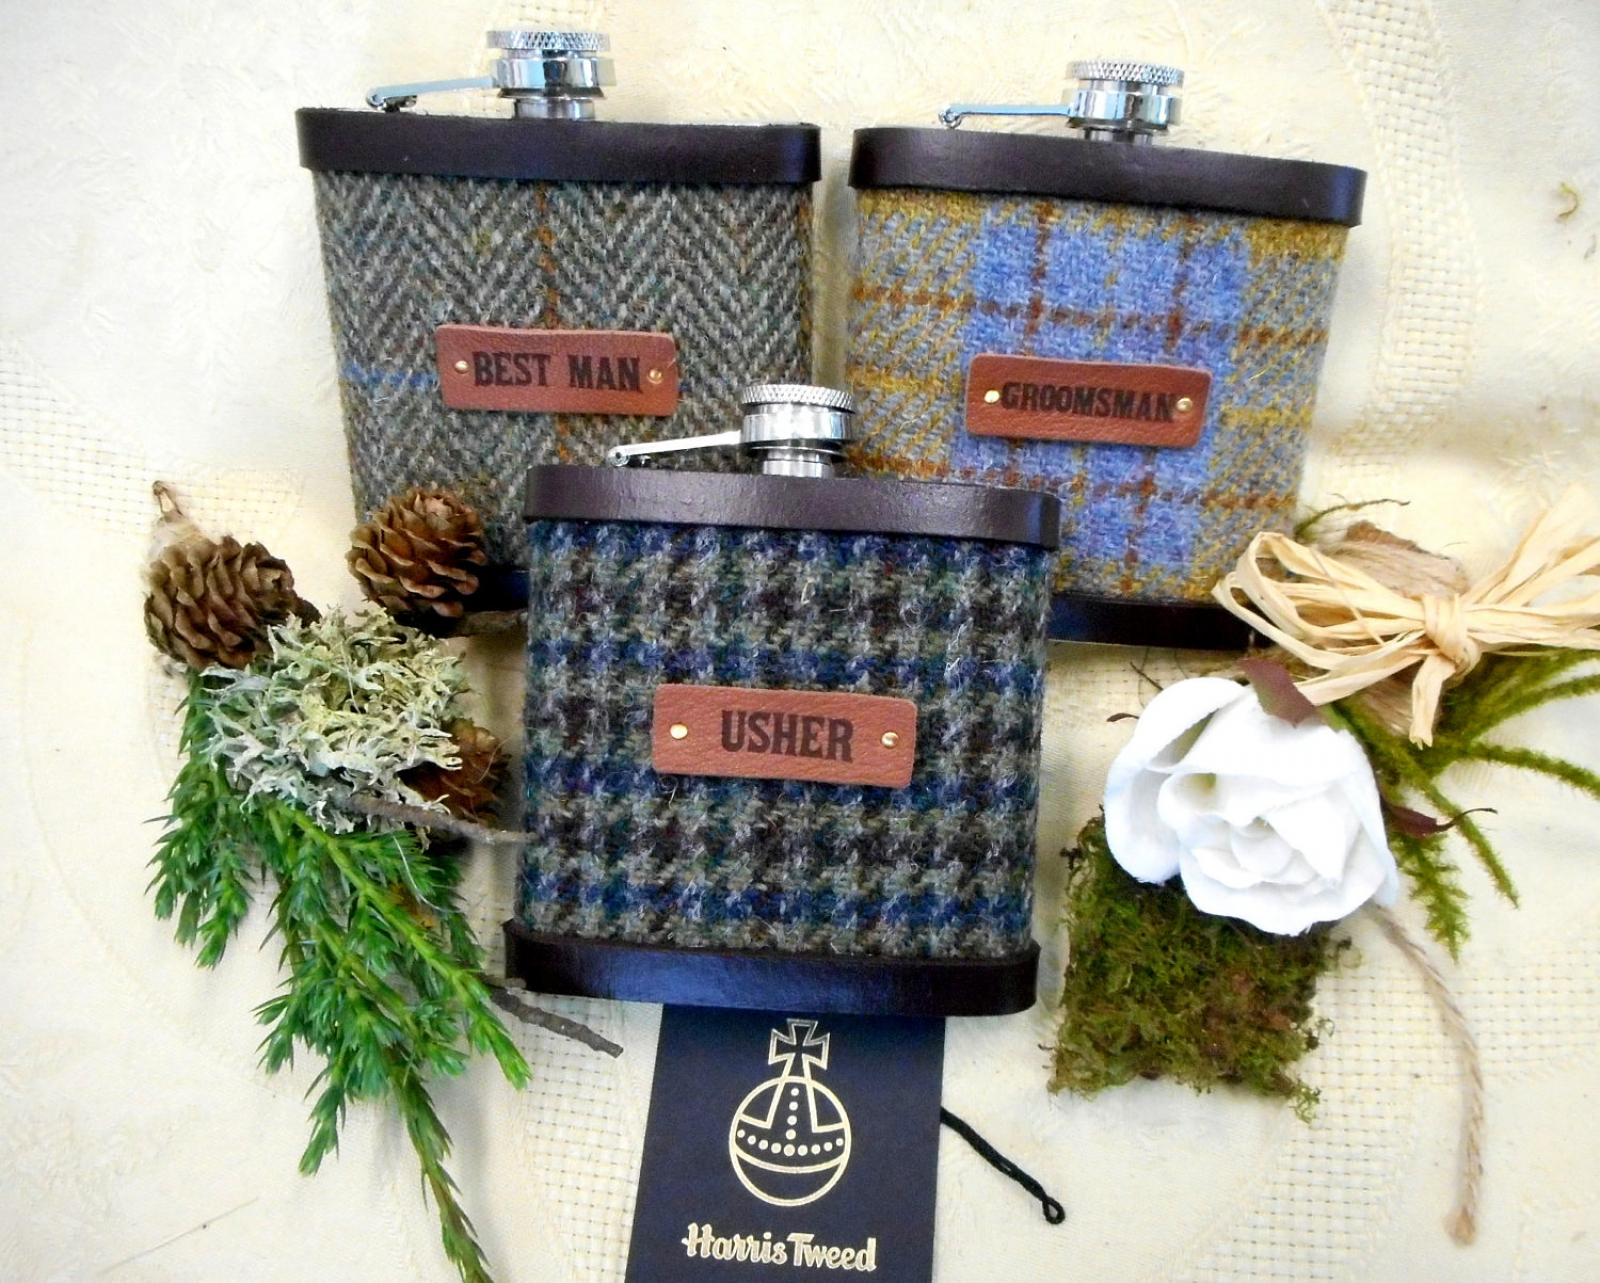 Scottish Wedding Gifts: Rustic , Woodland Or Barn Scottish Wedding Gifts, Harris